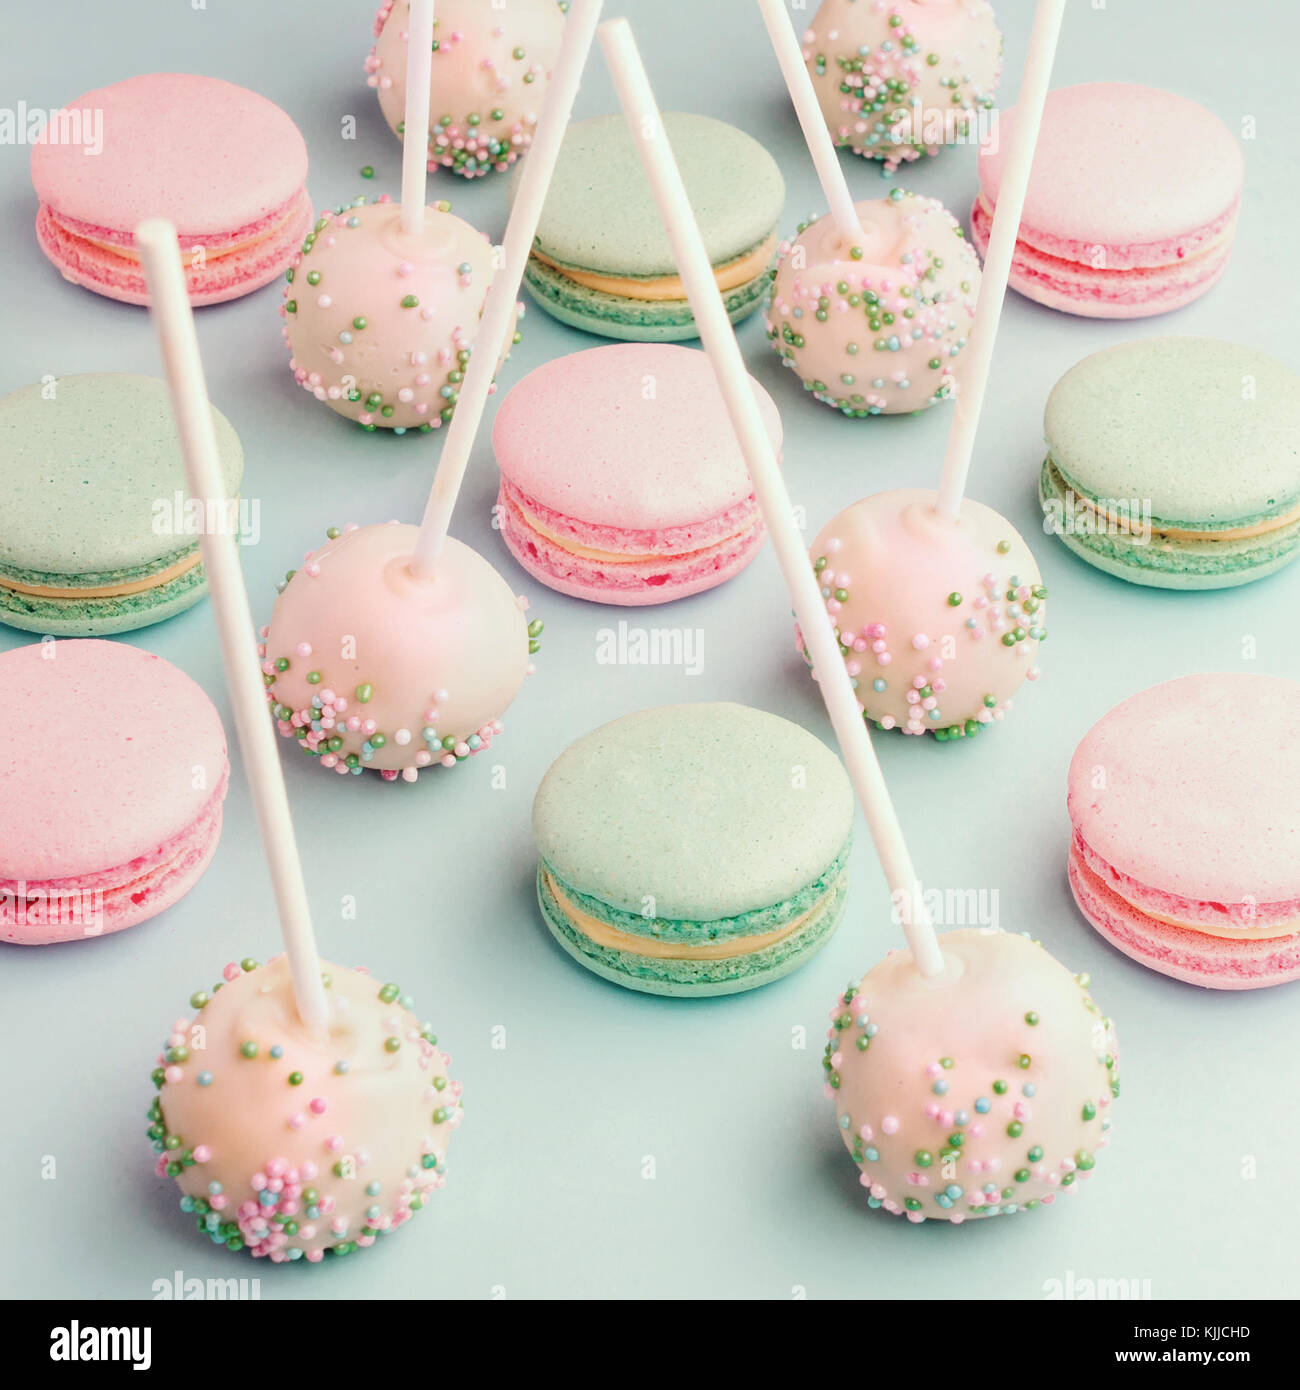 Shades Of Pink Cake Pops